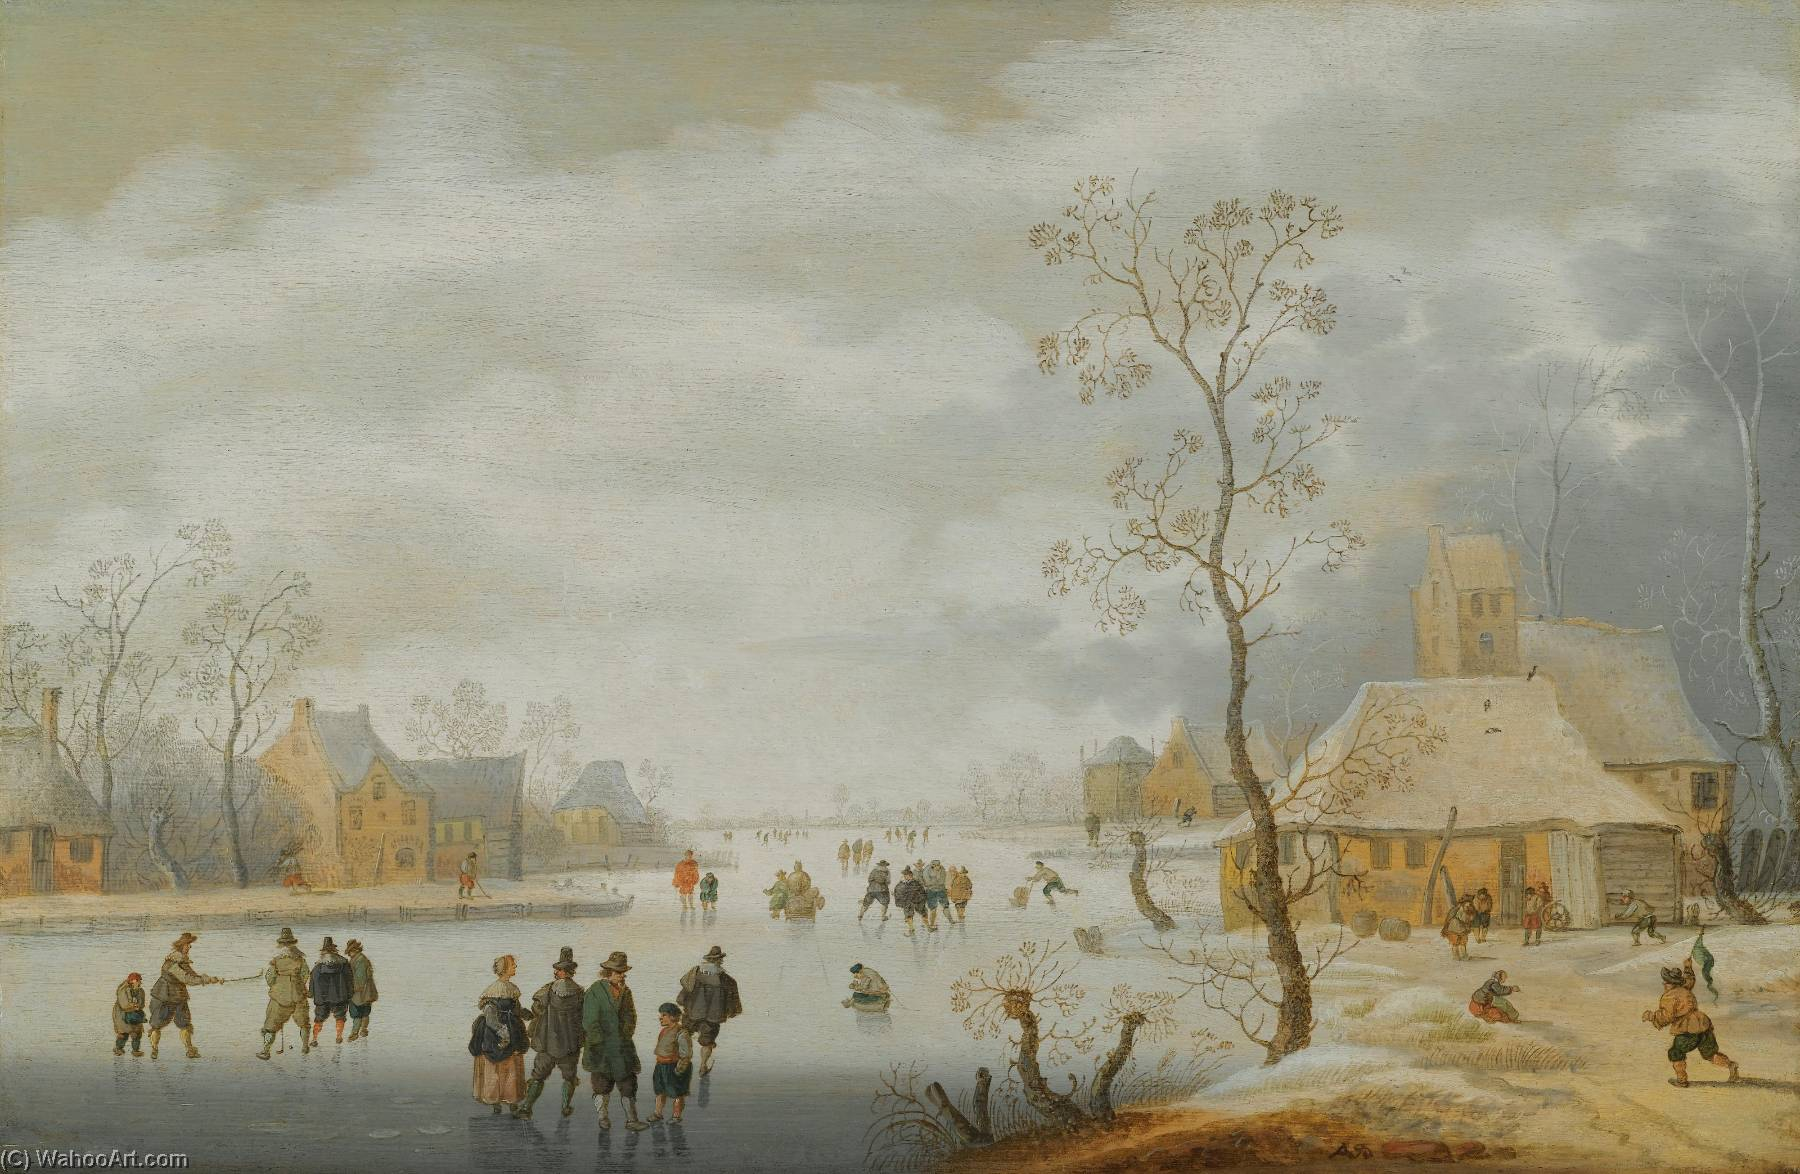 a paysage d`hiver avec sihouettes patinage sur une rivière gelée à côté un village de Anthonie Verstraelen (1594-1641) | Reproductions De Qualité Musée Anthonie Verstraelen | ArtsDot.com